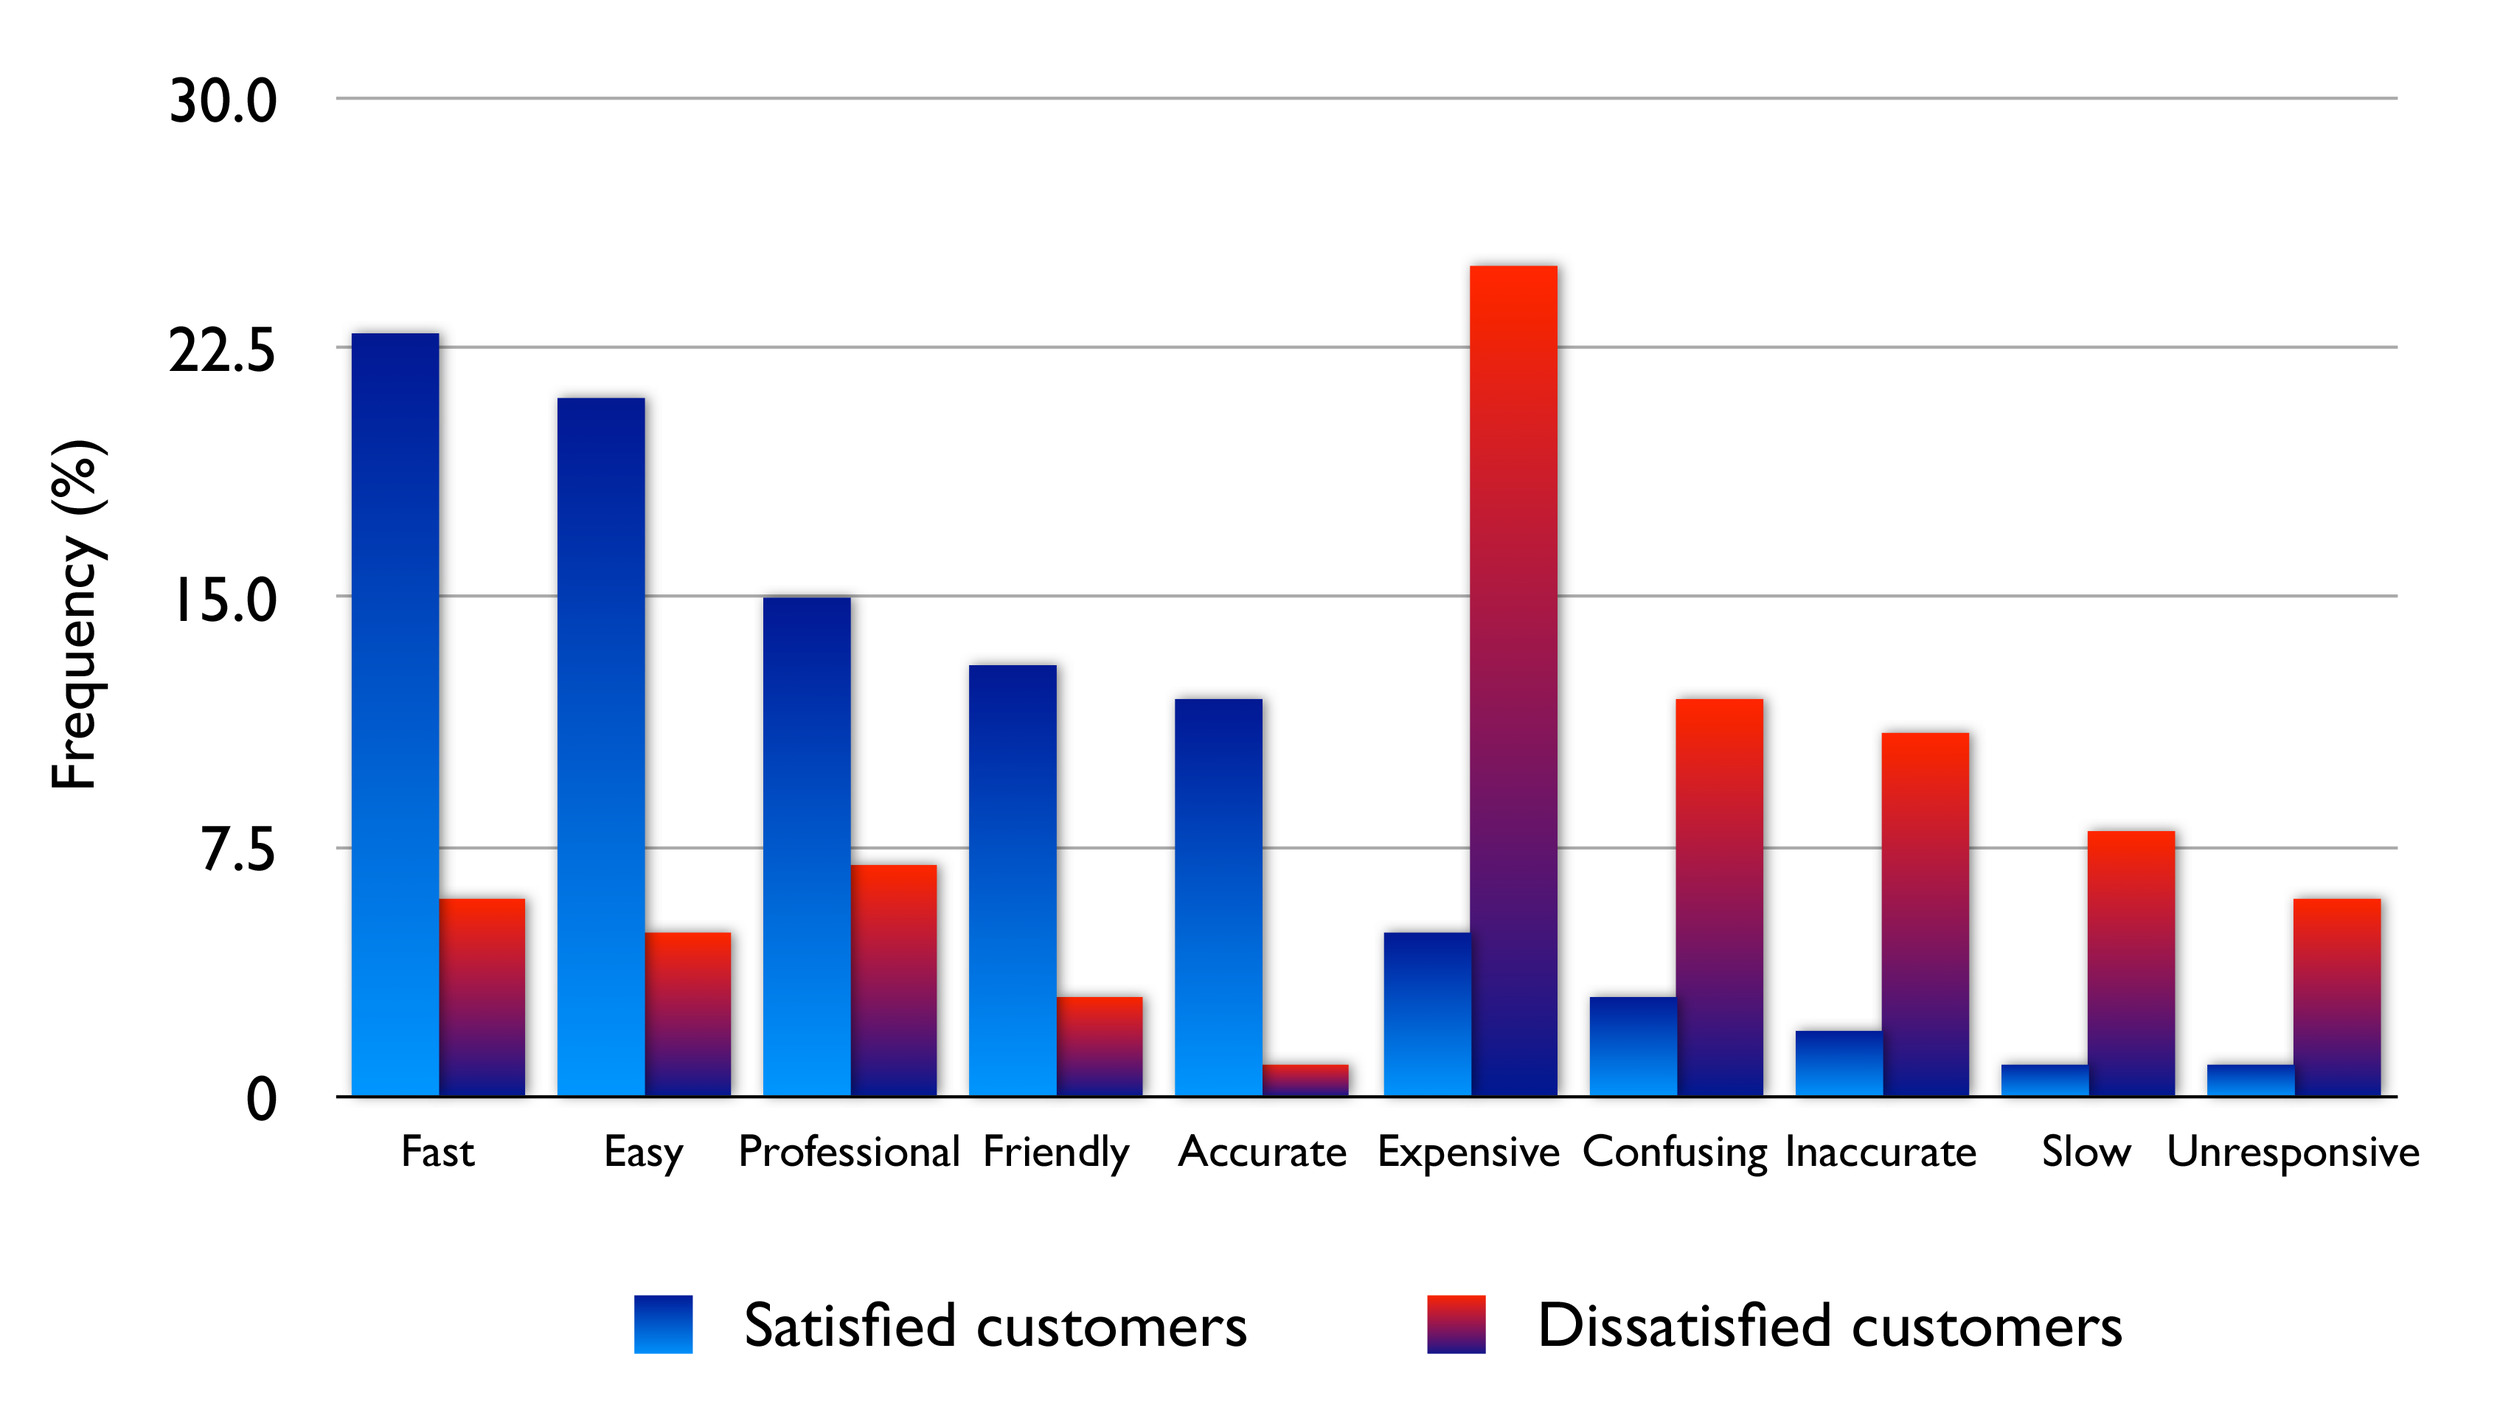 Figure 1. Frequency of issues mentioned by satisfied (Overall Satisfaction 4-5) versus dissatisfied (Overall Satisfaction 1-2) customers. Descending order of frequency for satisfied customers.